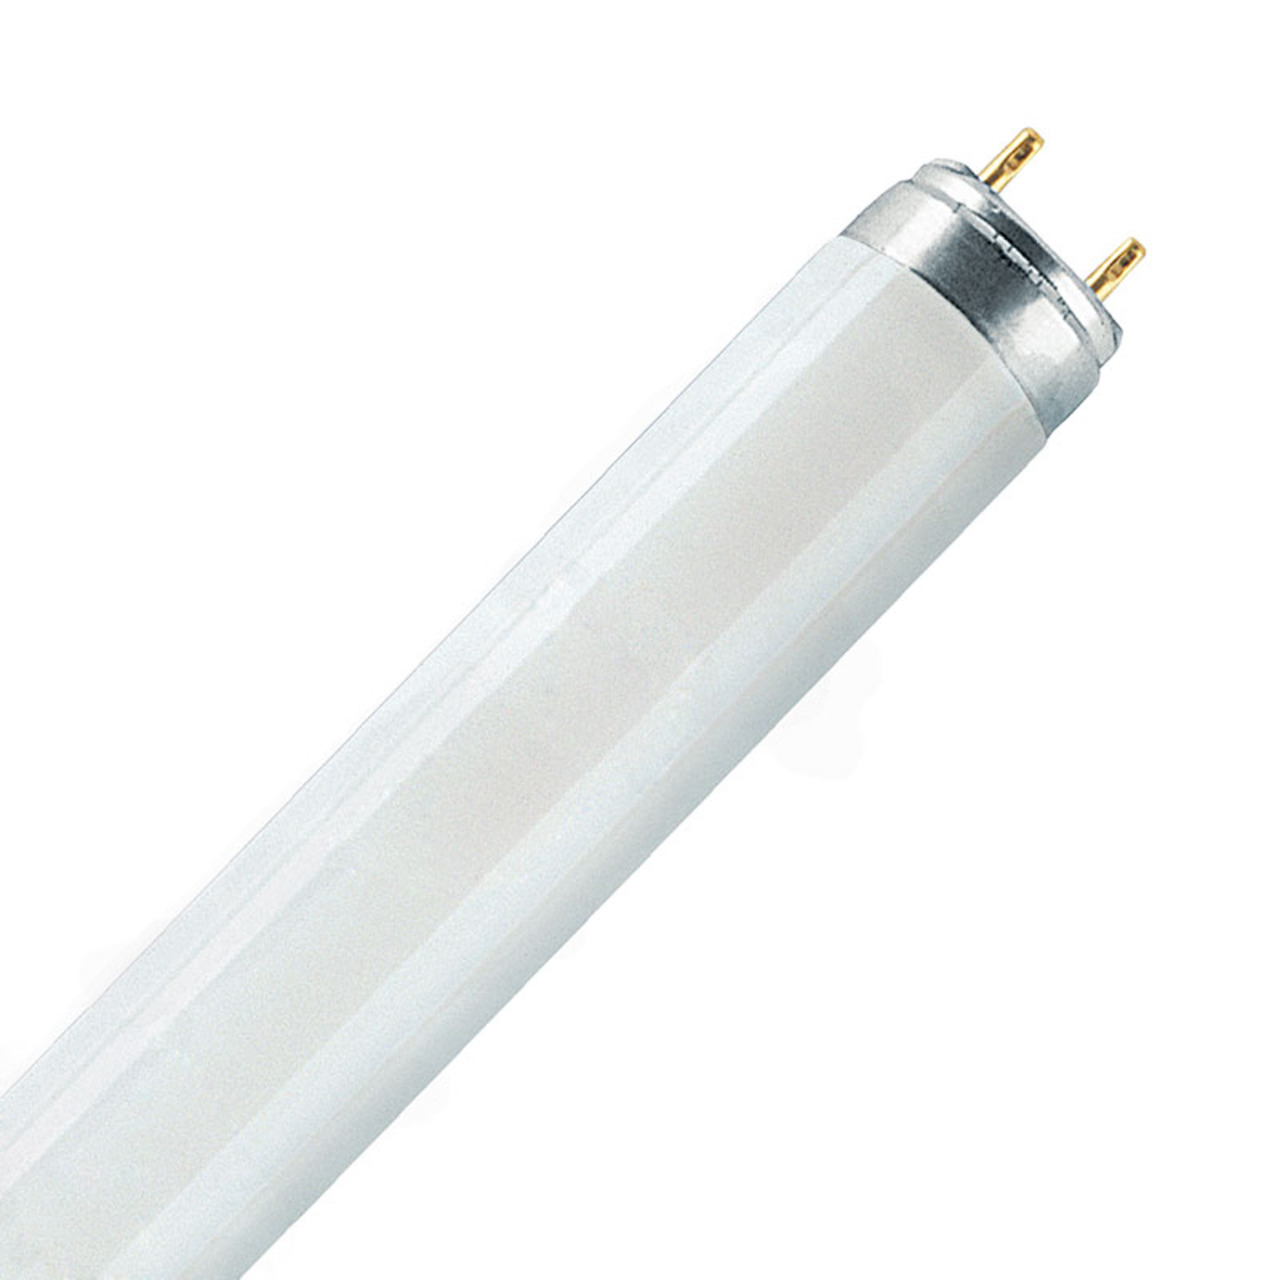 OSRAM SubstiTUBE Star 20-W-T8-LED-Röhrenlampe 150 cm- neutralweiss